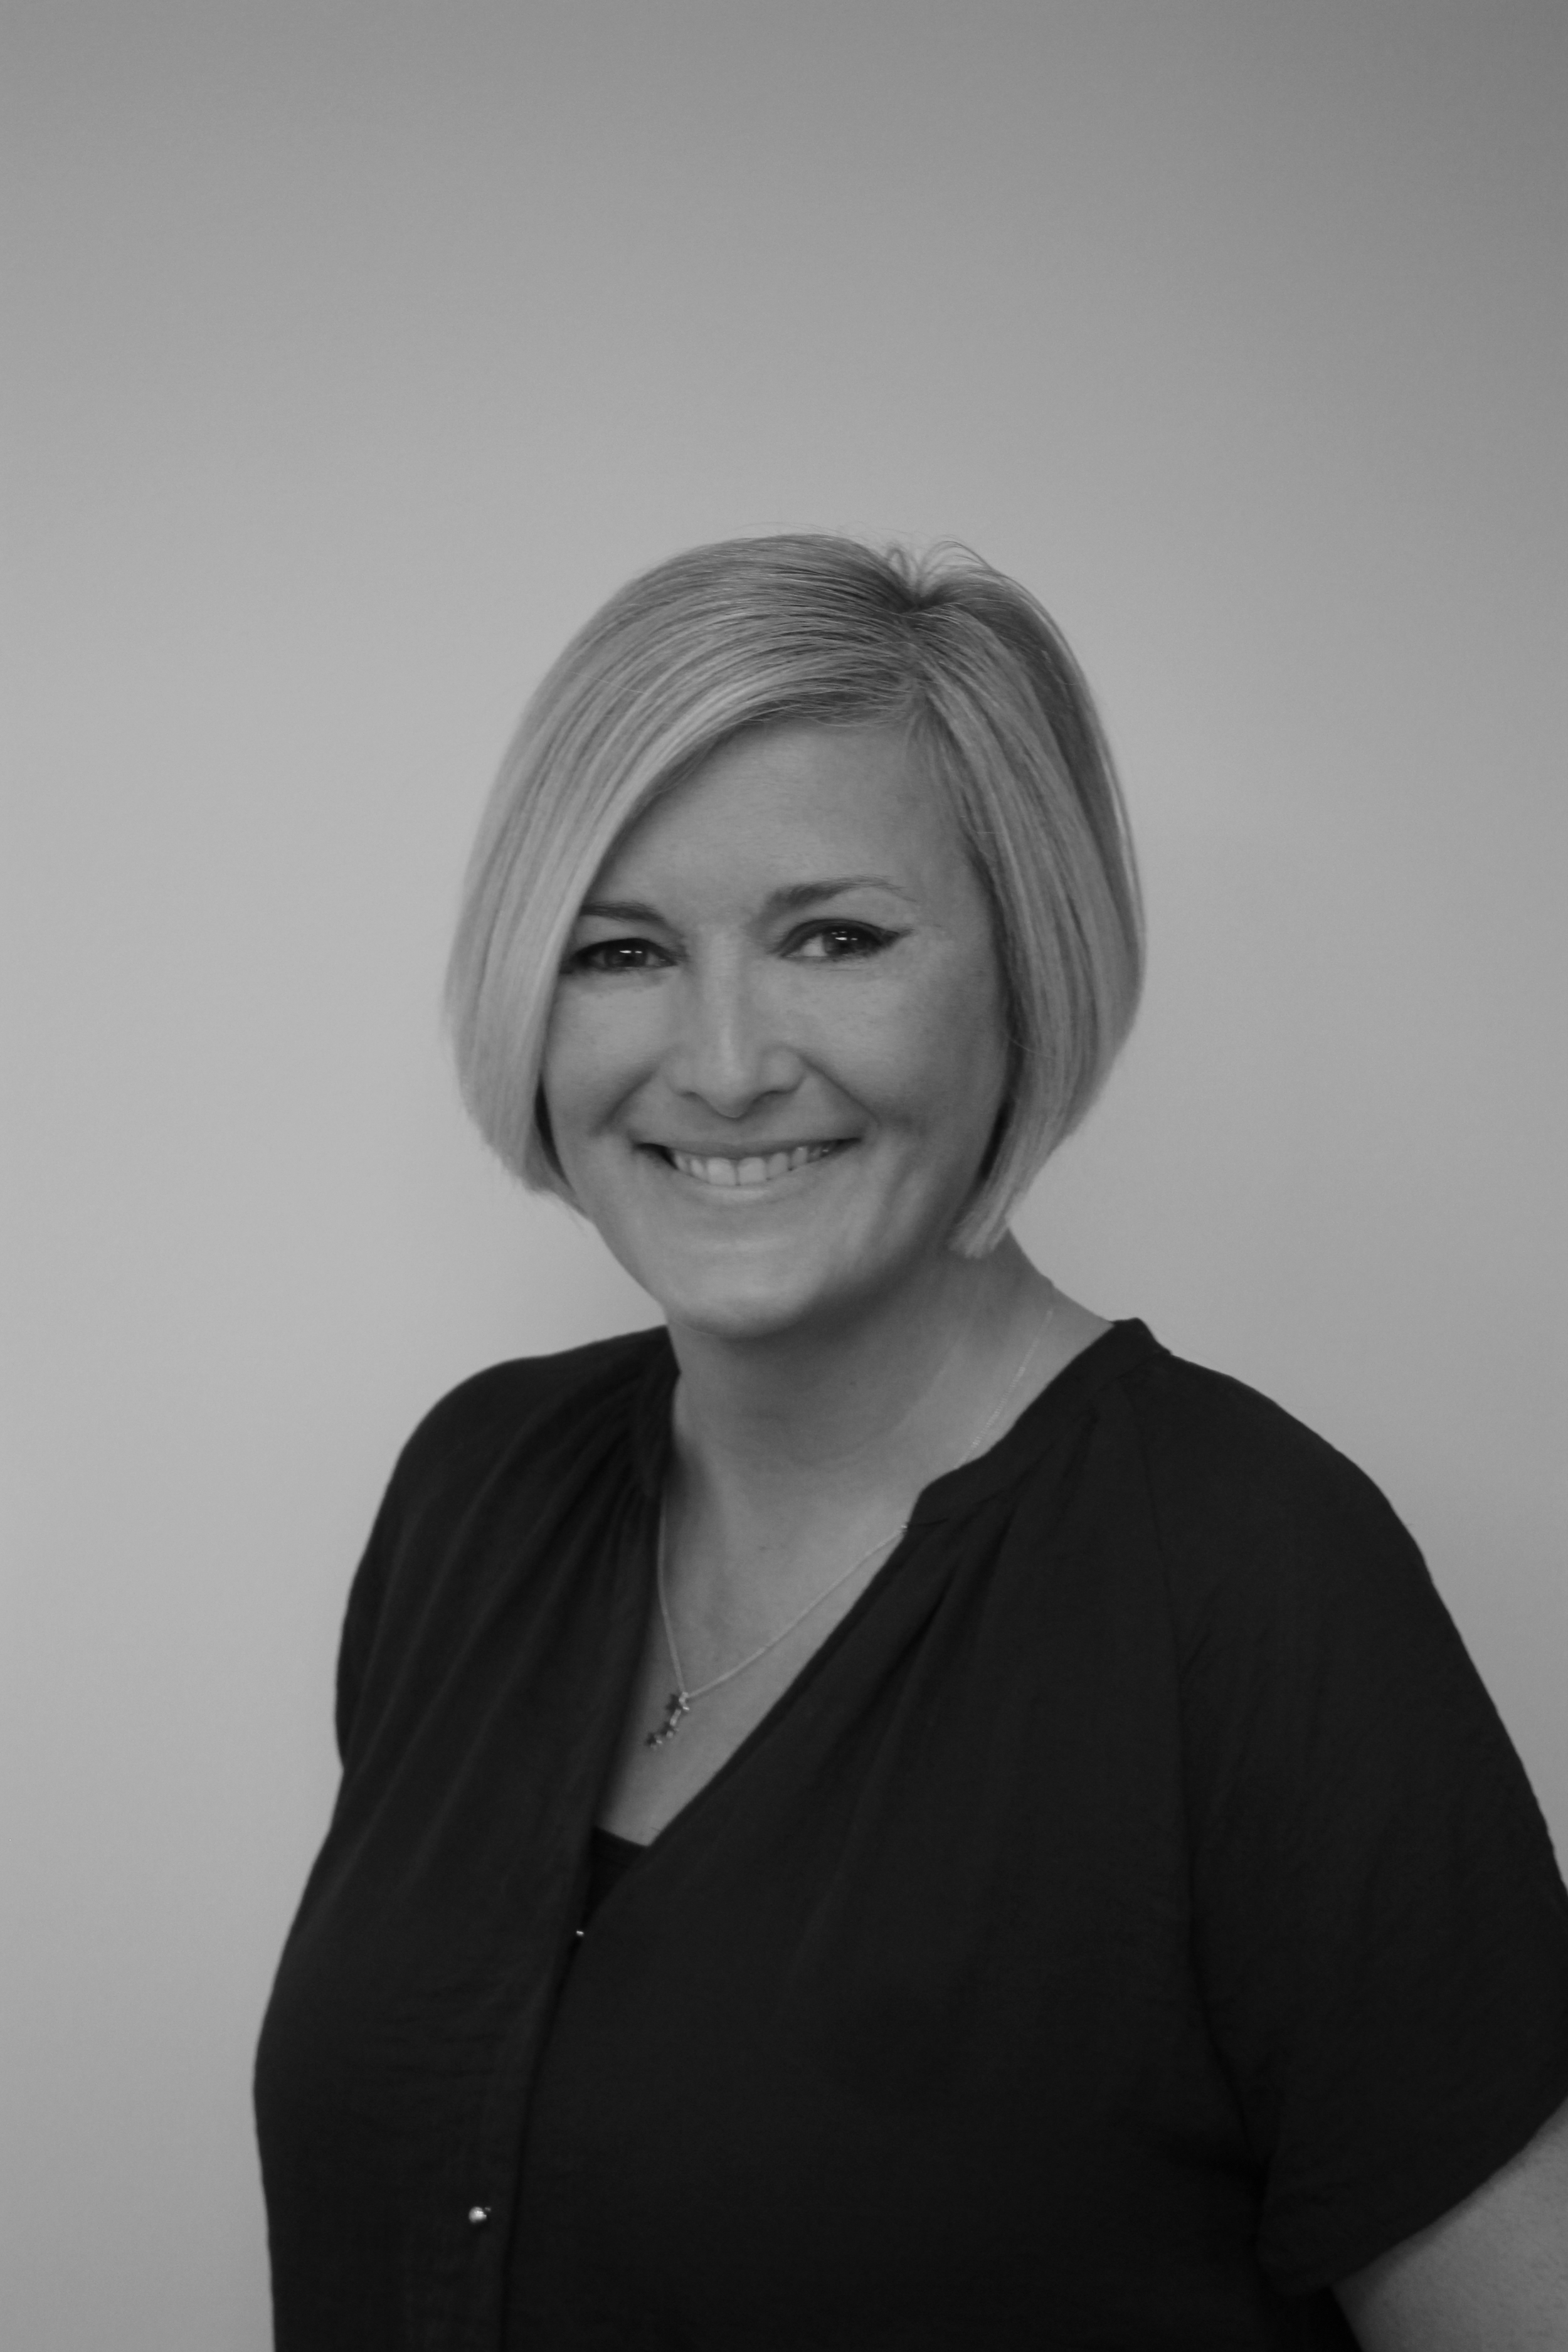 Jen has 18 years experience in the FMCG Industry having worked with customers to grow their categories YOY through marketing and development. Jen has extensive knowledge and experience in market analysis, consumer research and presentation creation and has led UK wide research plans implemented for FMCG customers.    Jen has superior skills in event and project management.